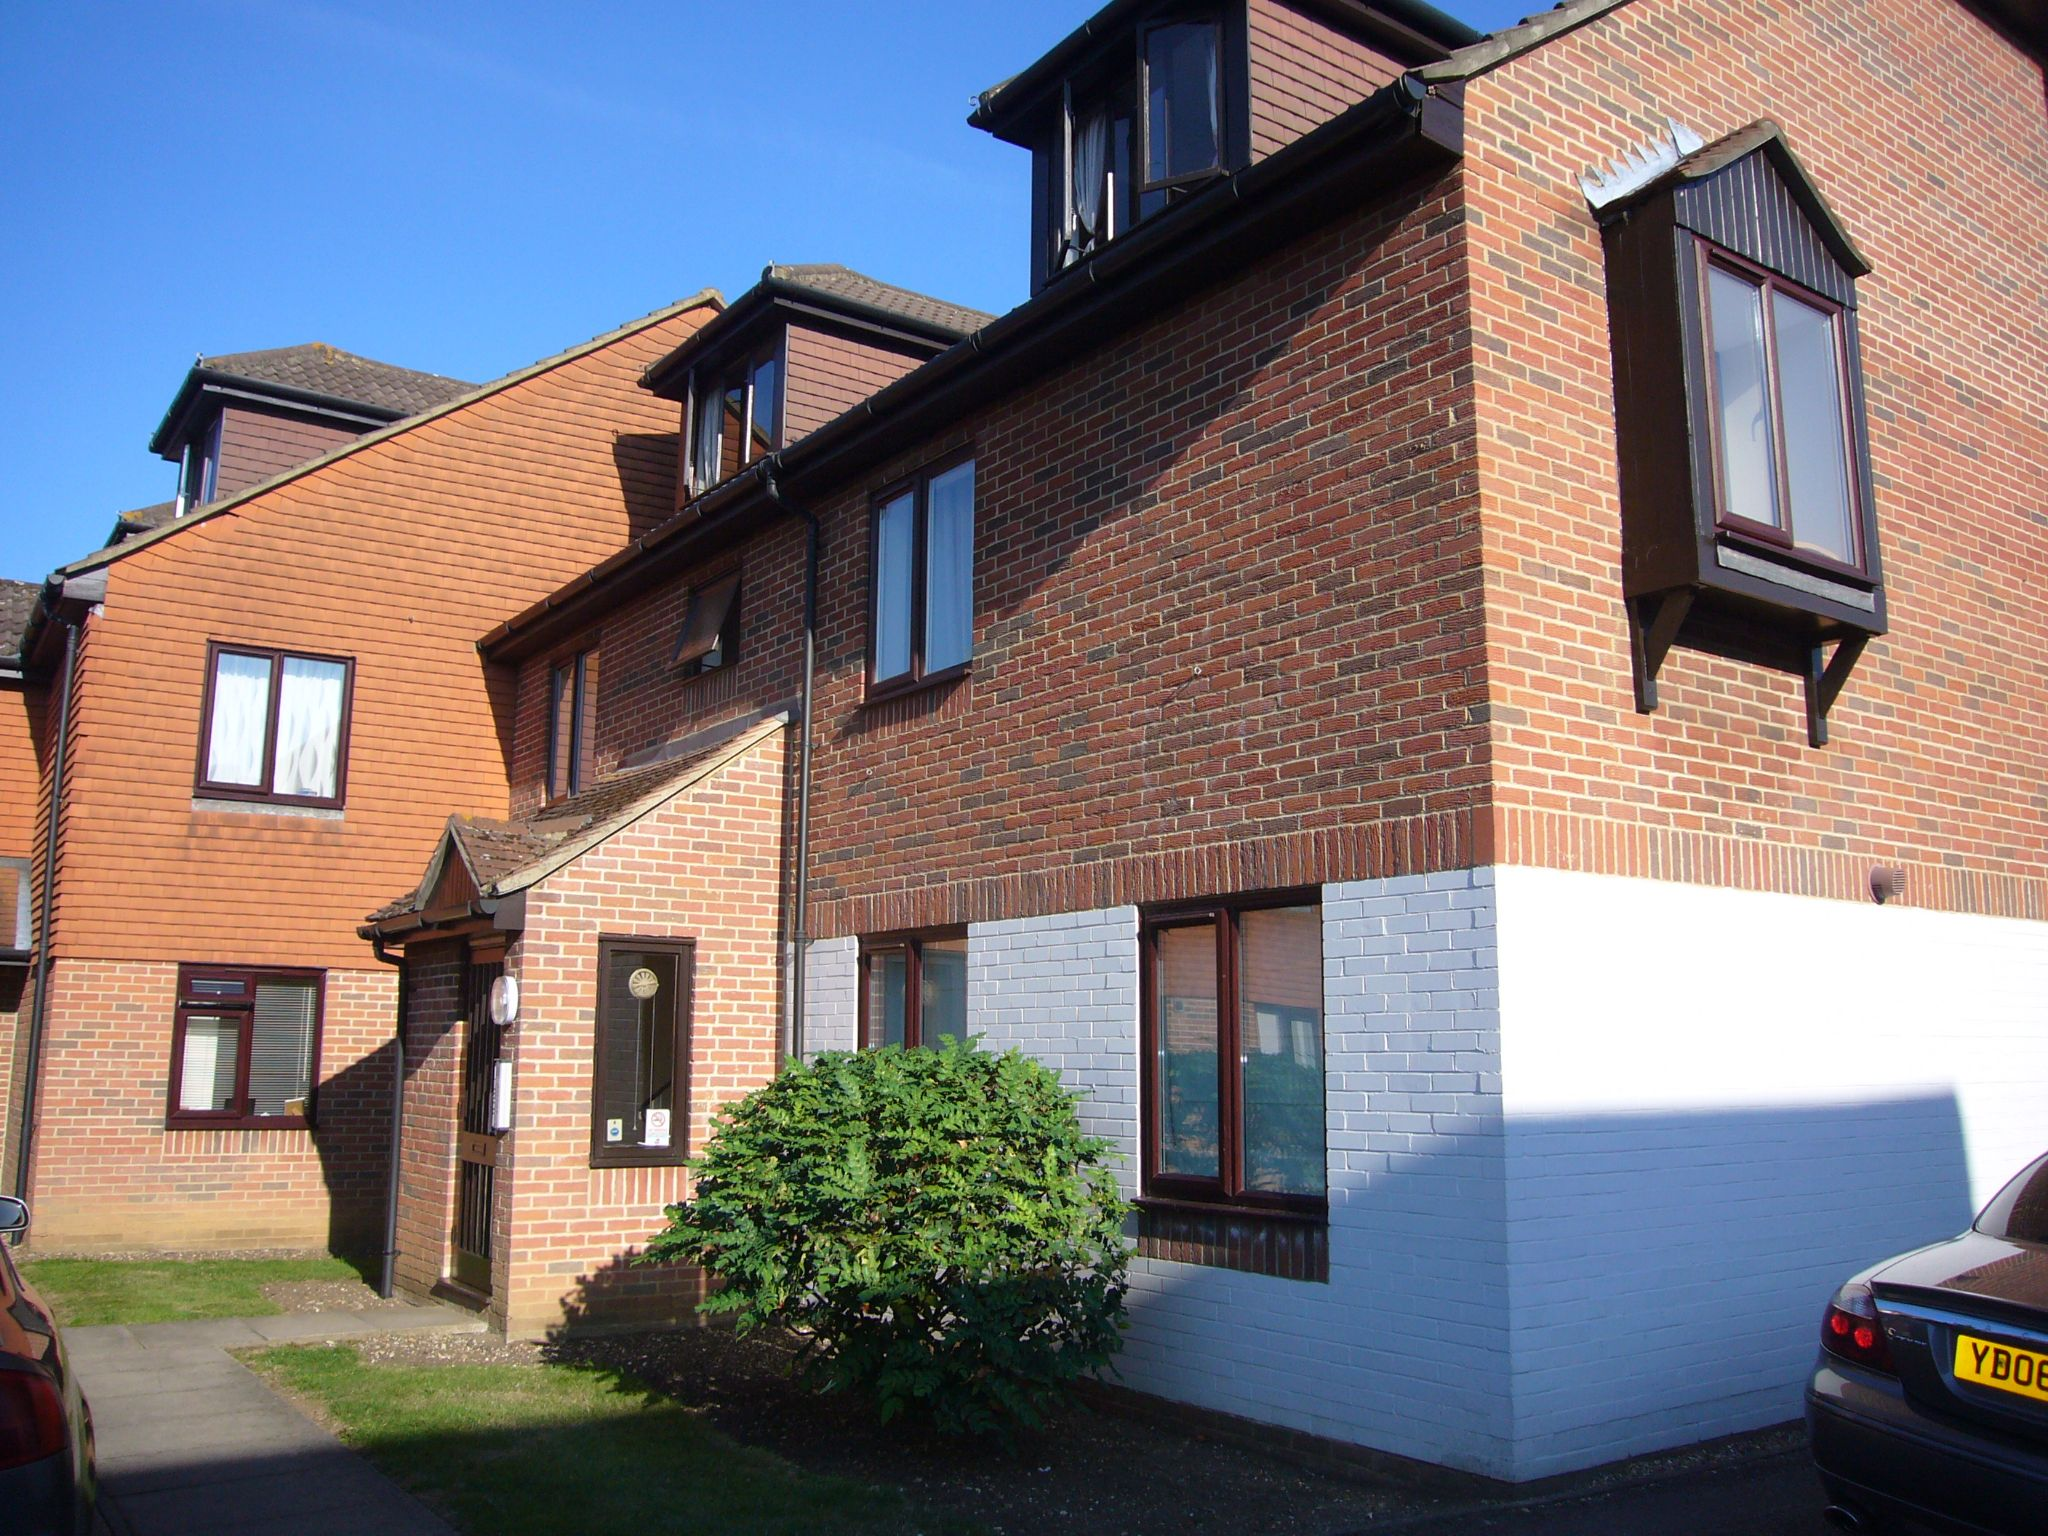 2 bedroom apartment flat/apartment Let Agreed in Sutton - Photograph 1.